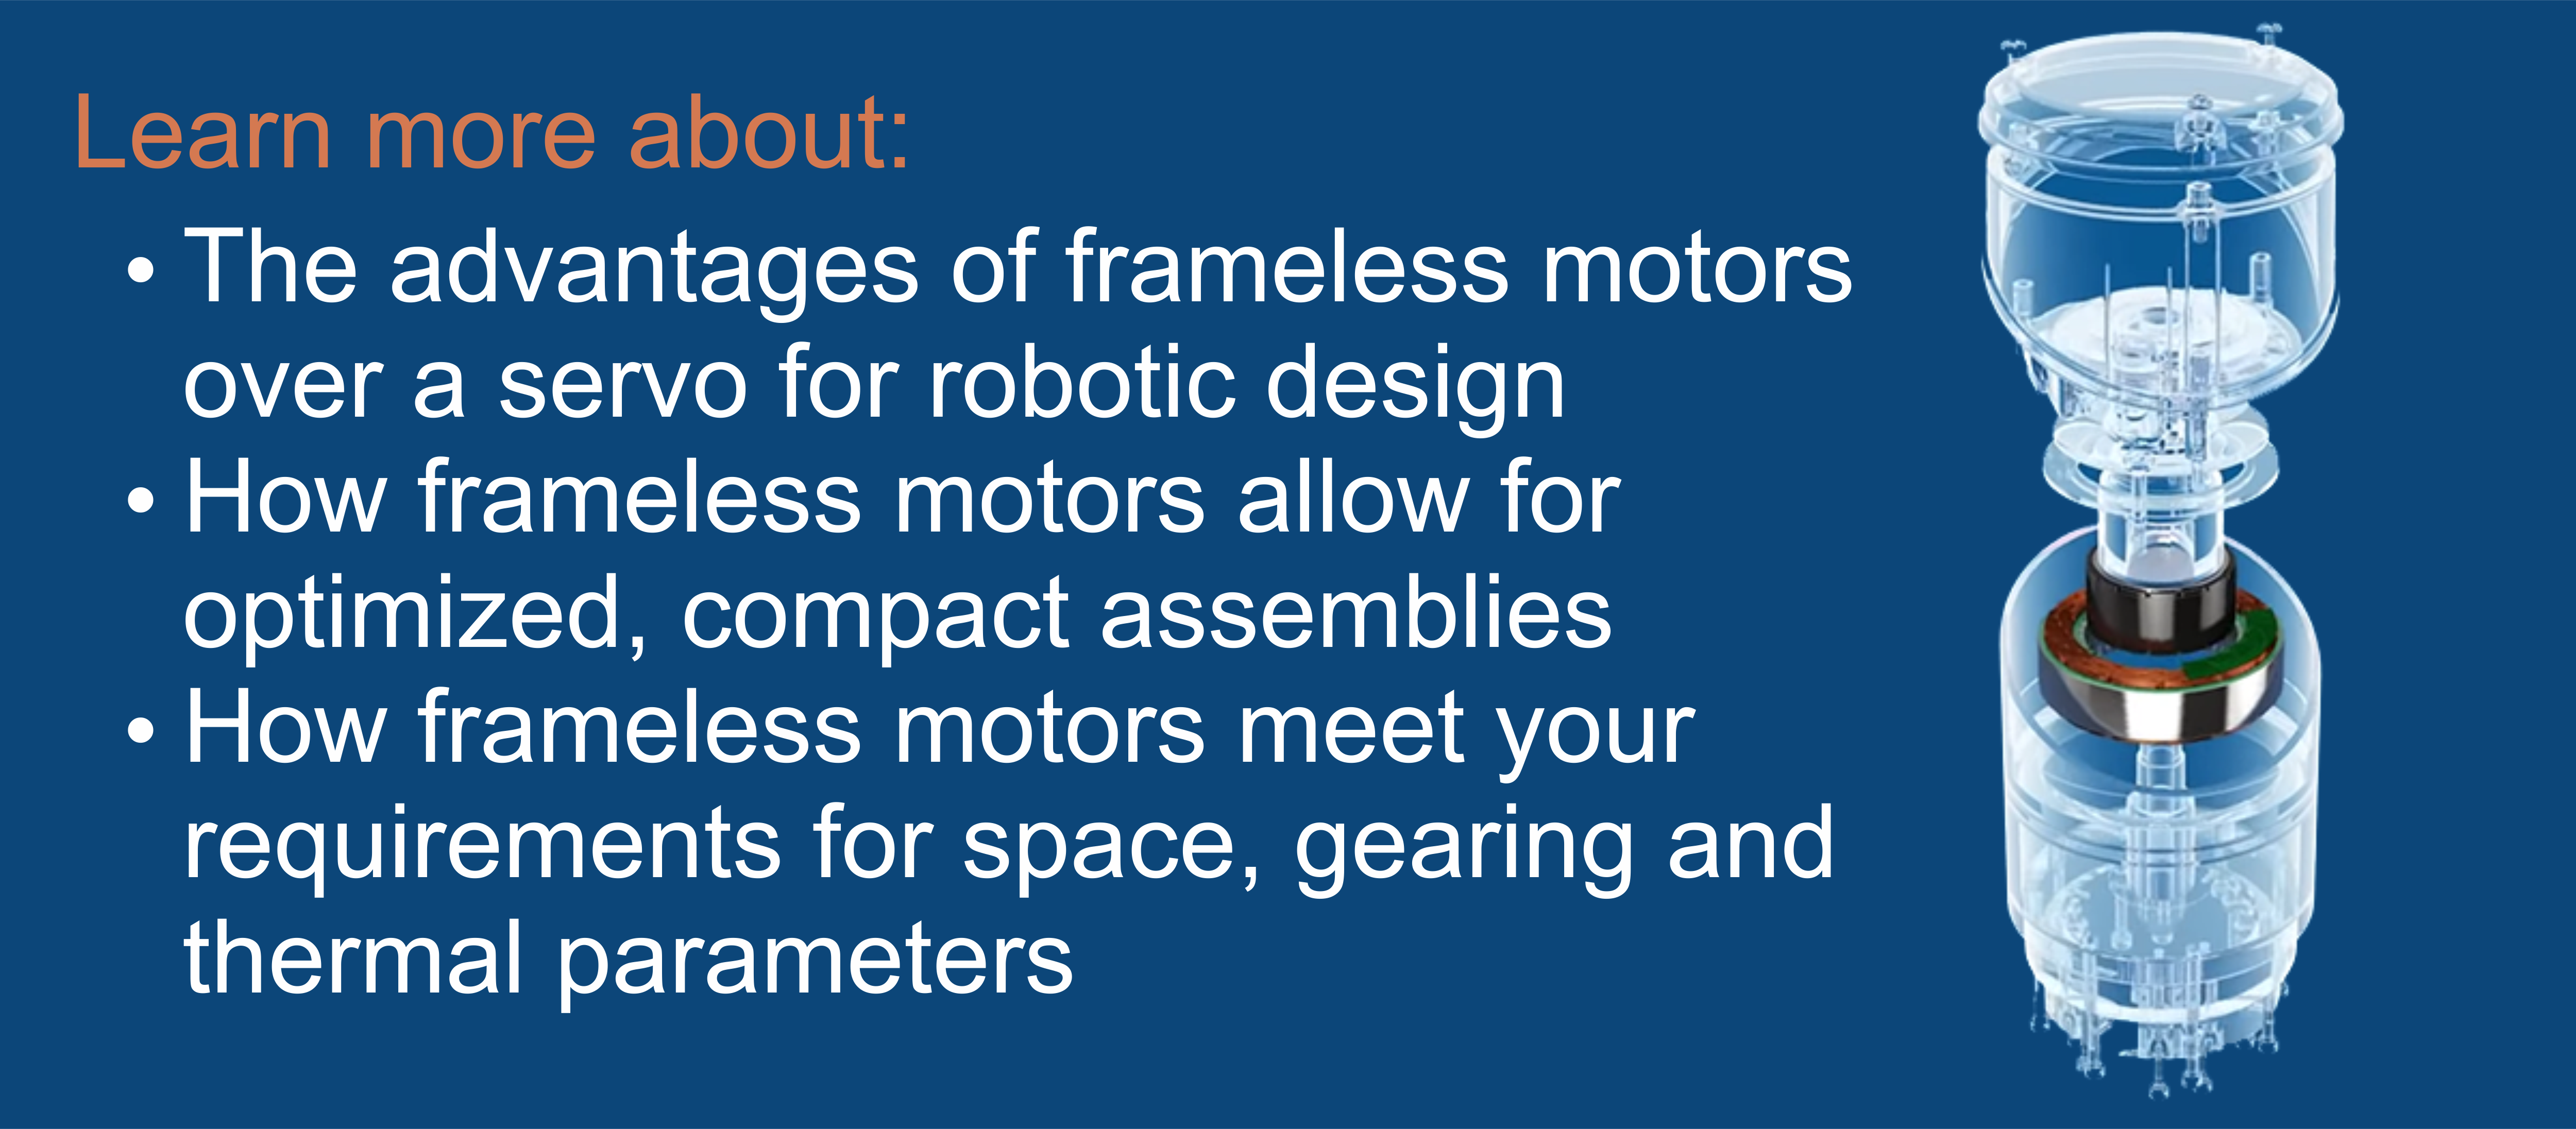 Demystifying the Use of Frameless Motors in Robotics (RBR)